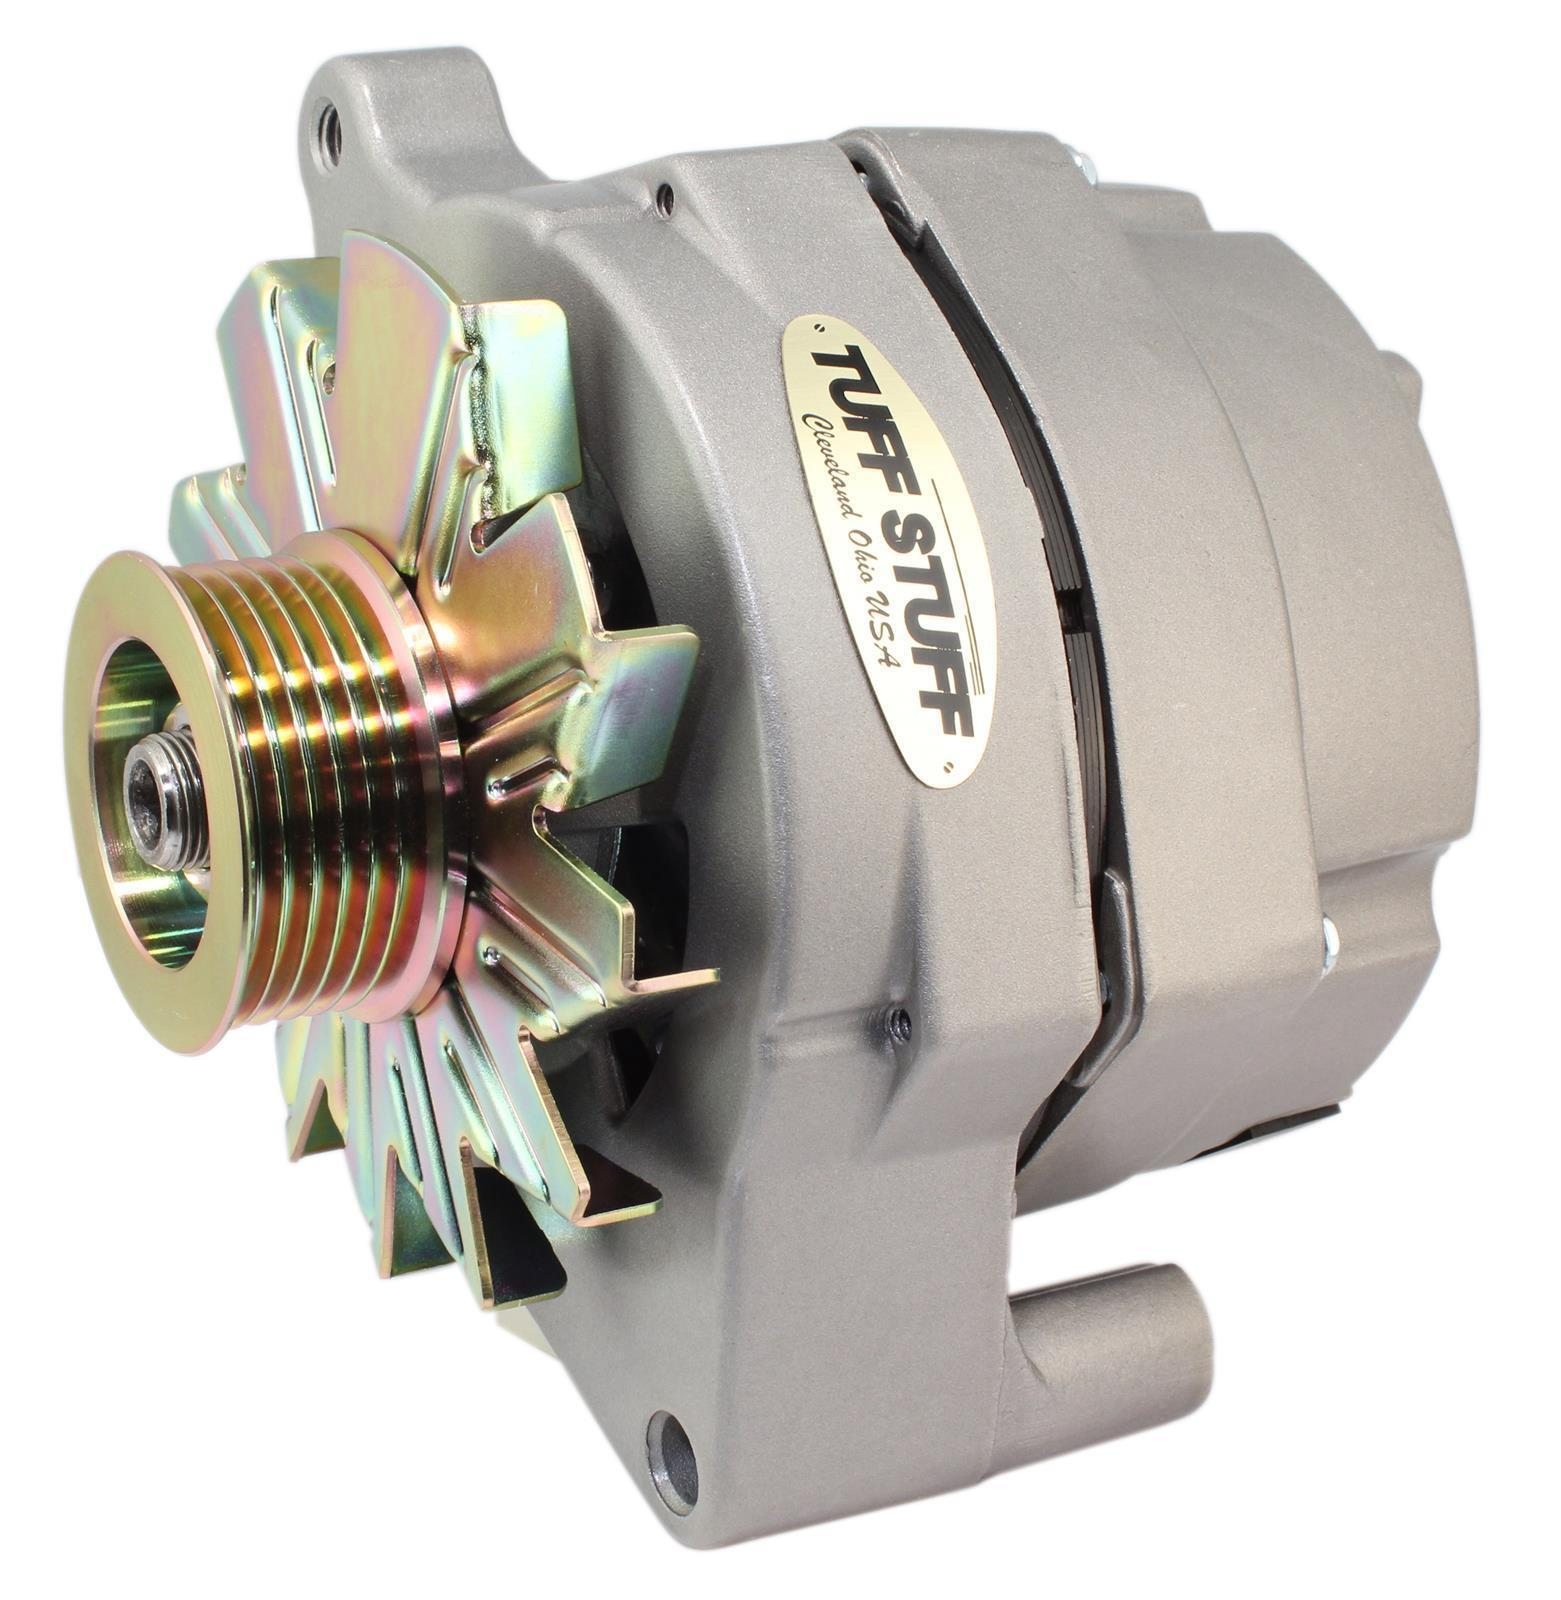 TUFF STUFF 100AMP 1-WIRE ALTERNATOR TUF70686G GM 10SI STYLE SUIT FORD  SERPENTINE - Tuff Stuff Performance